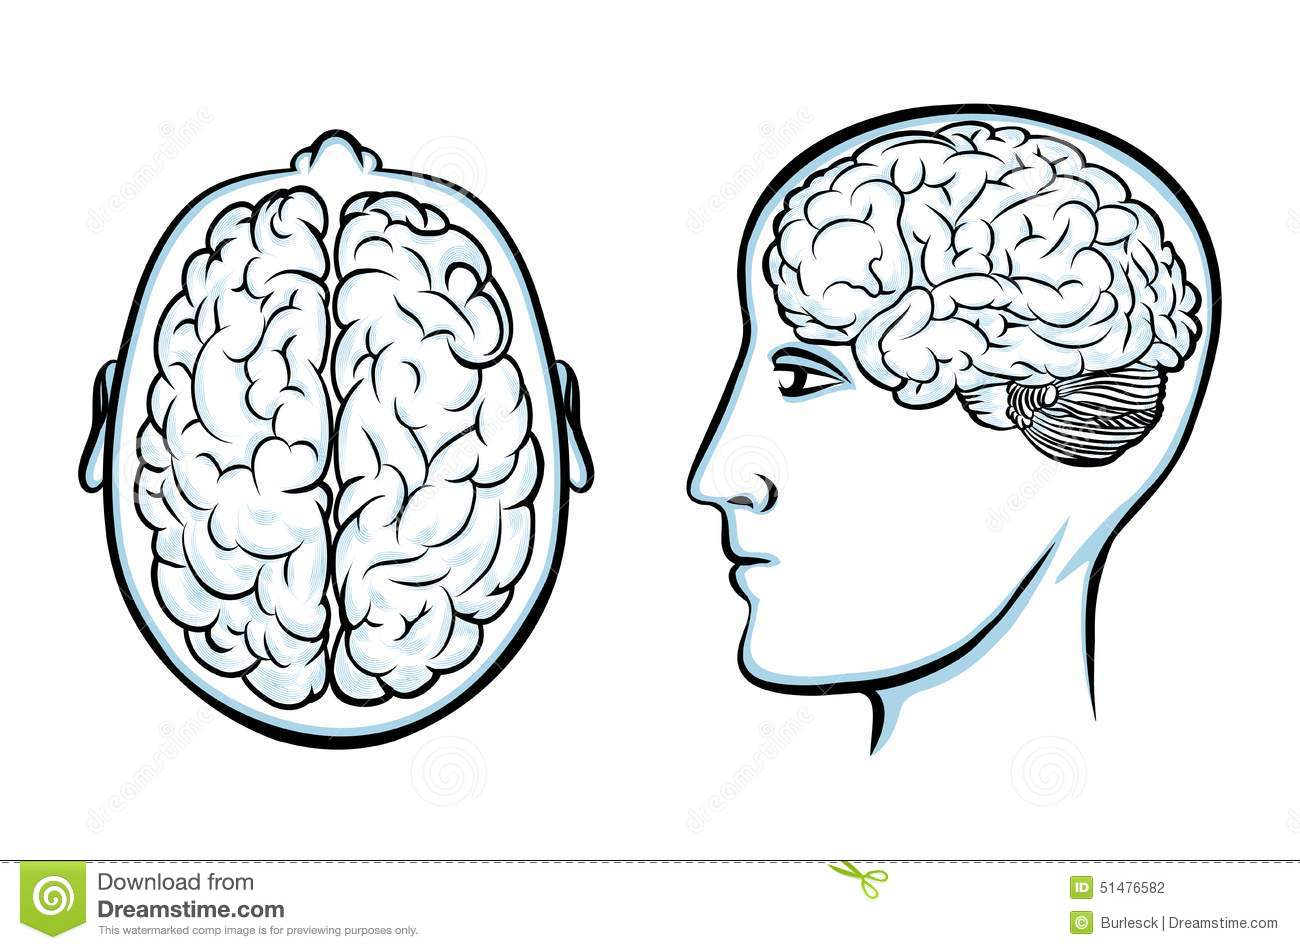 Silhouette Of A Human Head With Brain Stock Vector - Illustration of ...